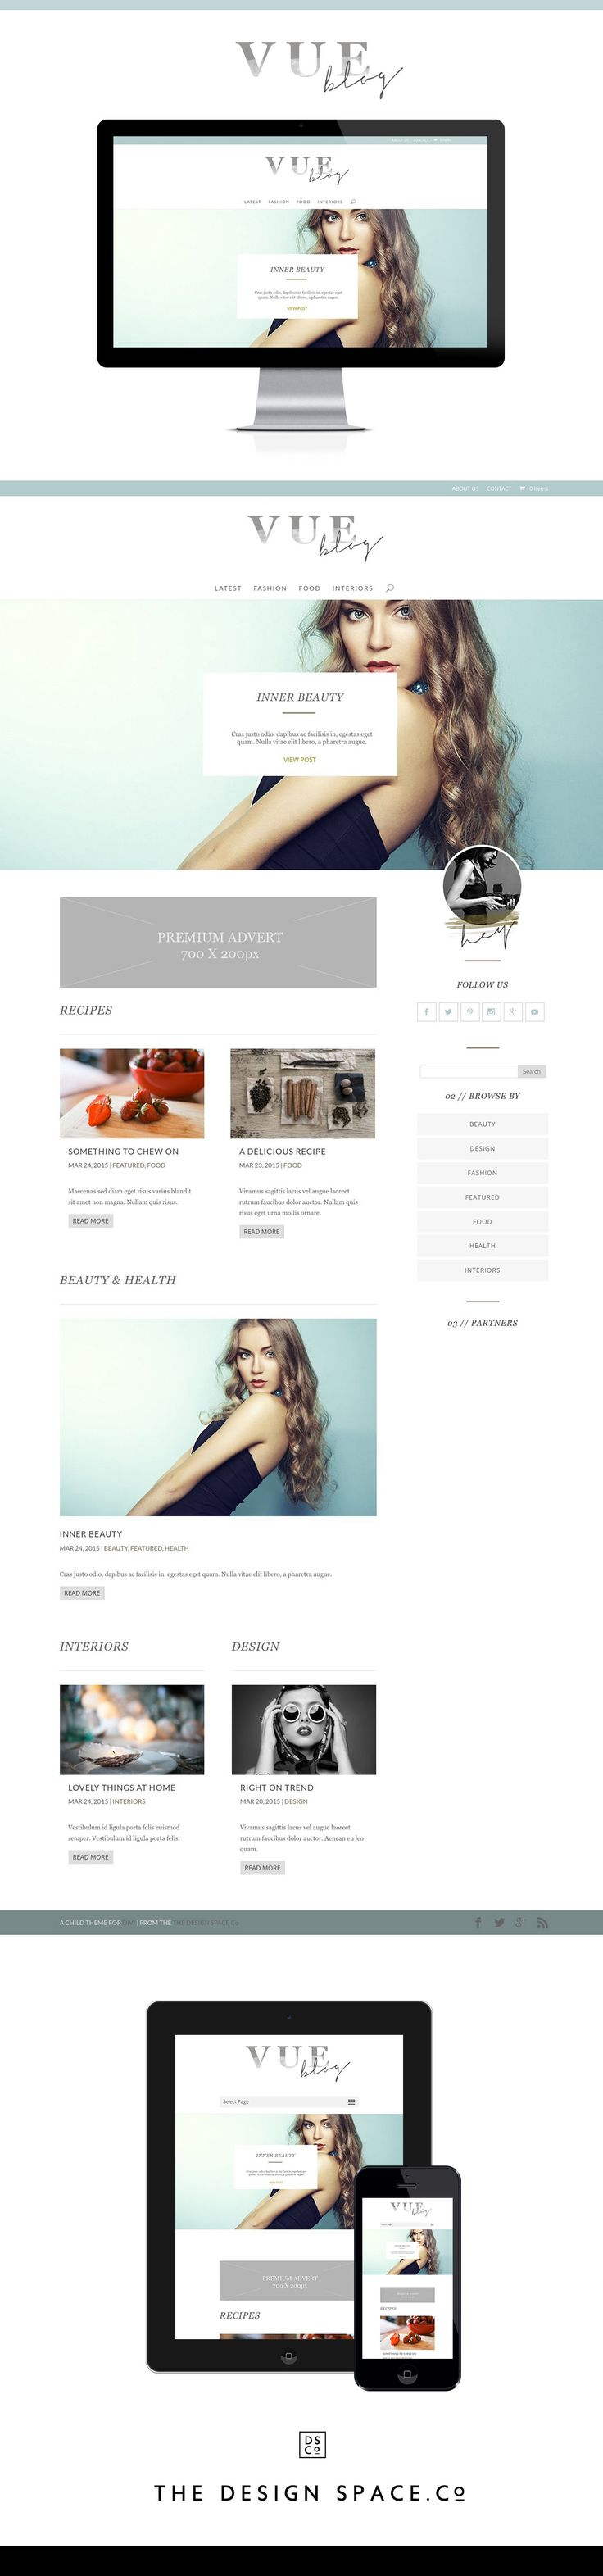 Vue Website Theme for Divi. Divi Child Theme, Website design, clean website, WordPress, blog design, fashion blogger. Theme By the thedesignspace.co